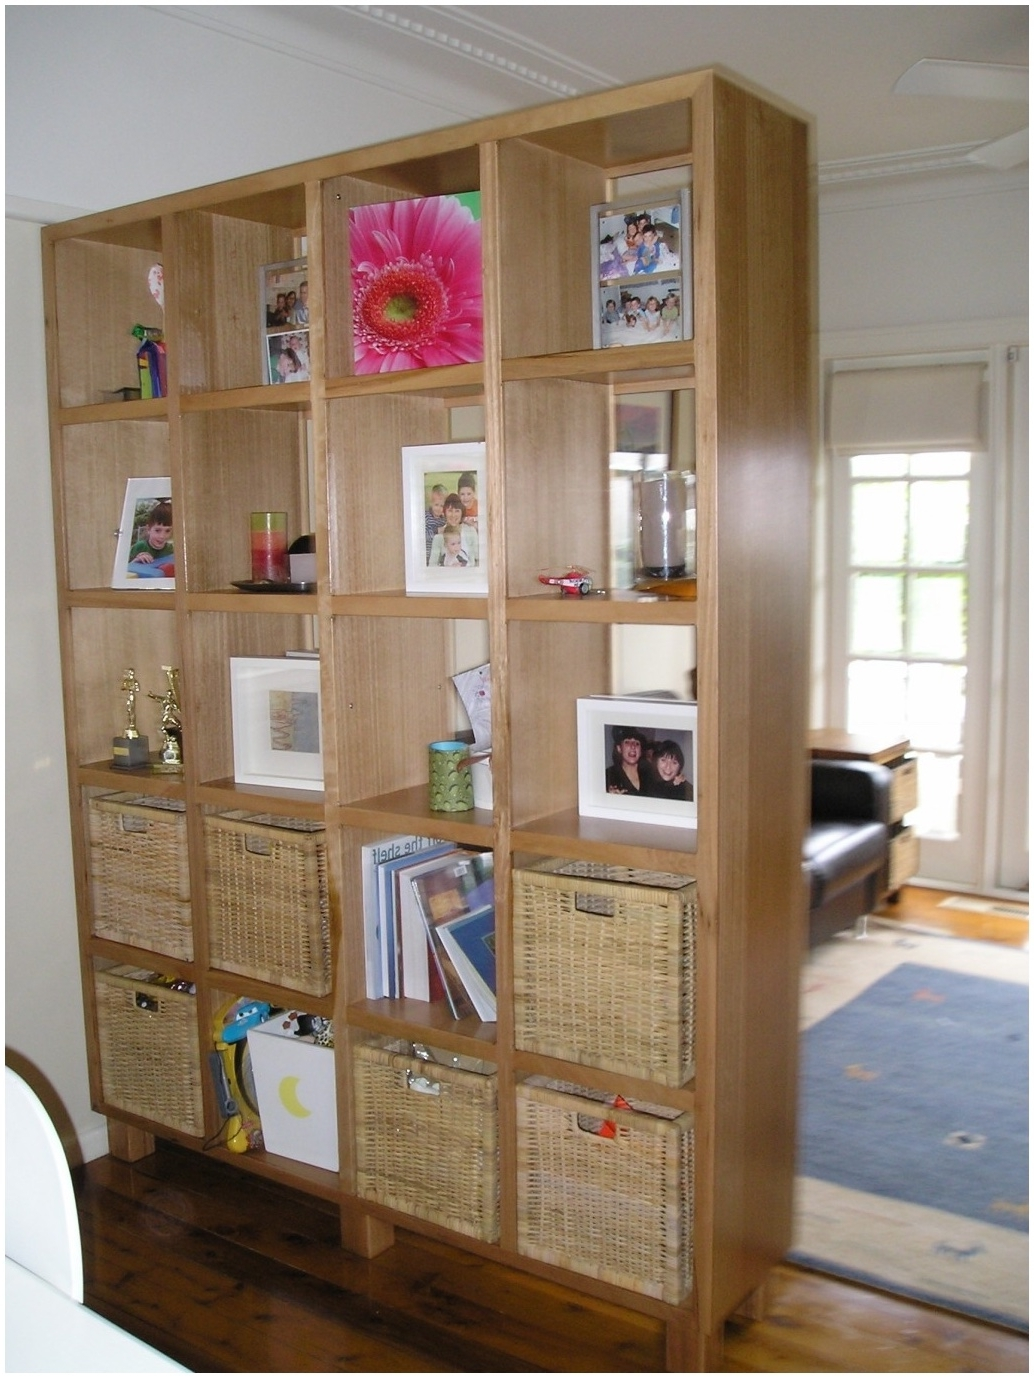 Jenny Lind Bookcases For Widely Used Furniture: Portfolio Jenny Lind Bookcase Jenny Lind Land Of Nod (View 13 of 15)